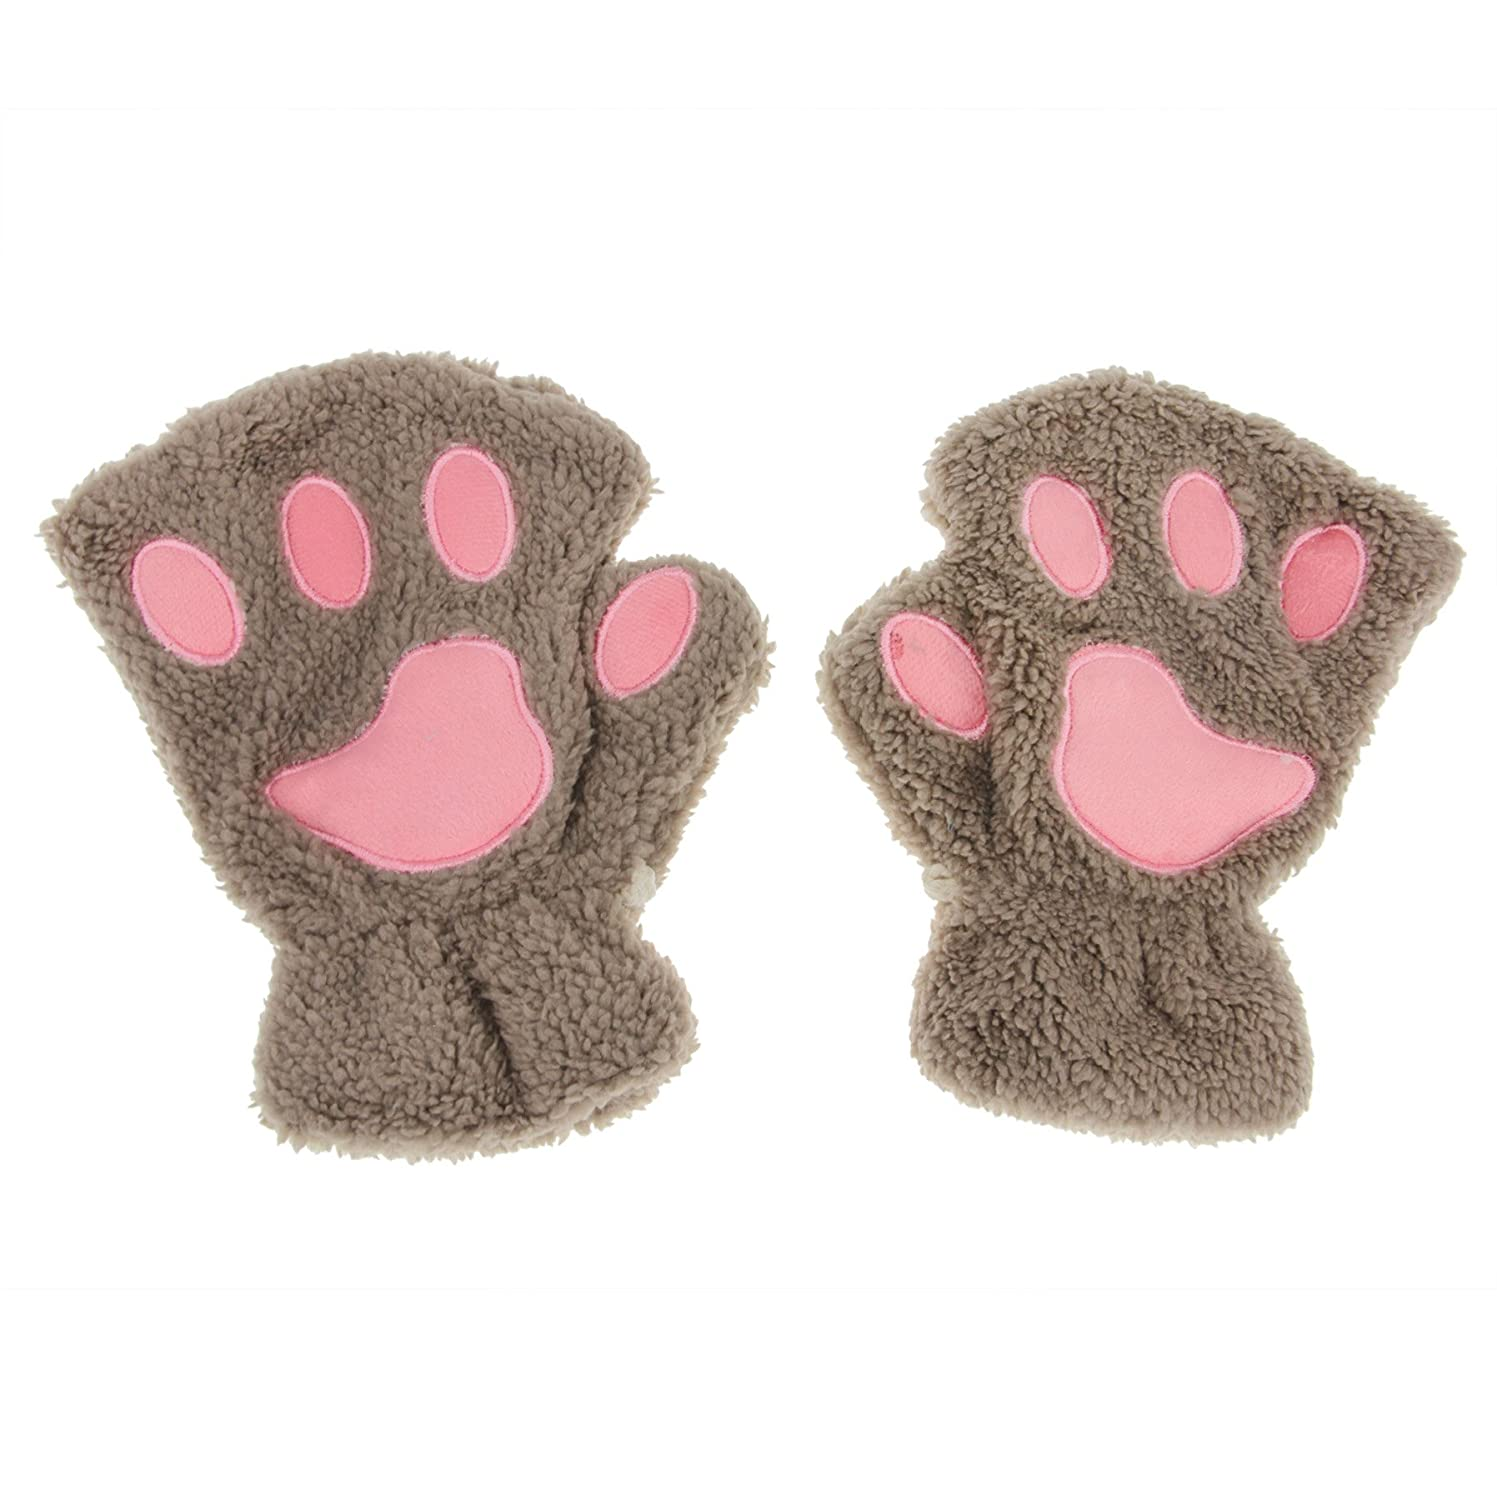 APAS Women Winter Fluffy Bear Cat Plush Paw Claw Glove Half Finger Cute Gloves Mittens CA10-0015-00BE